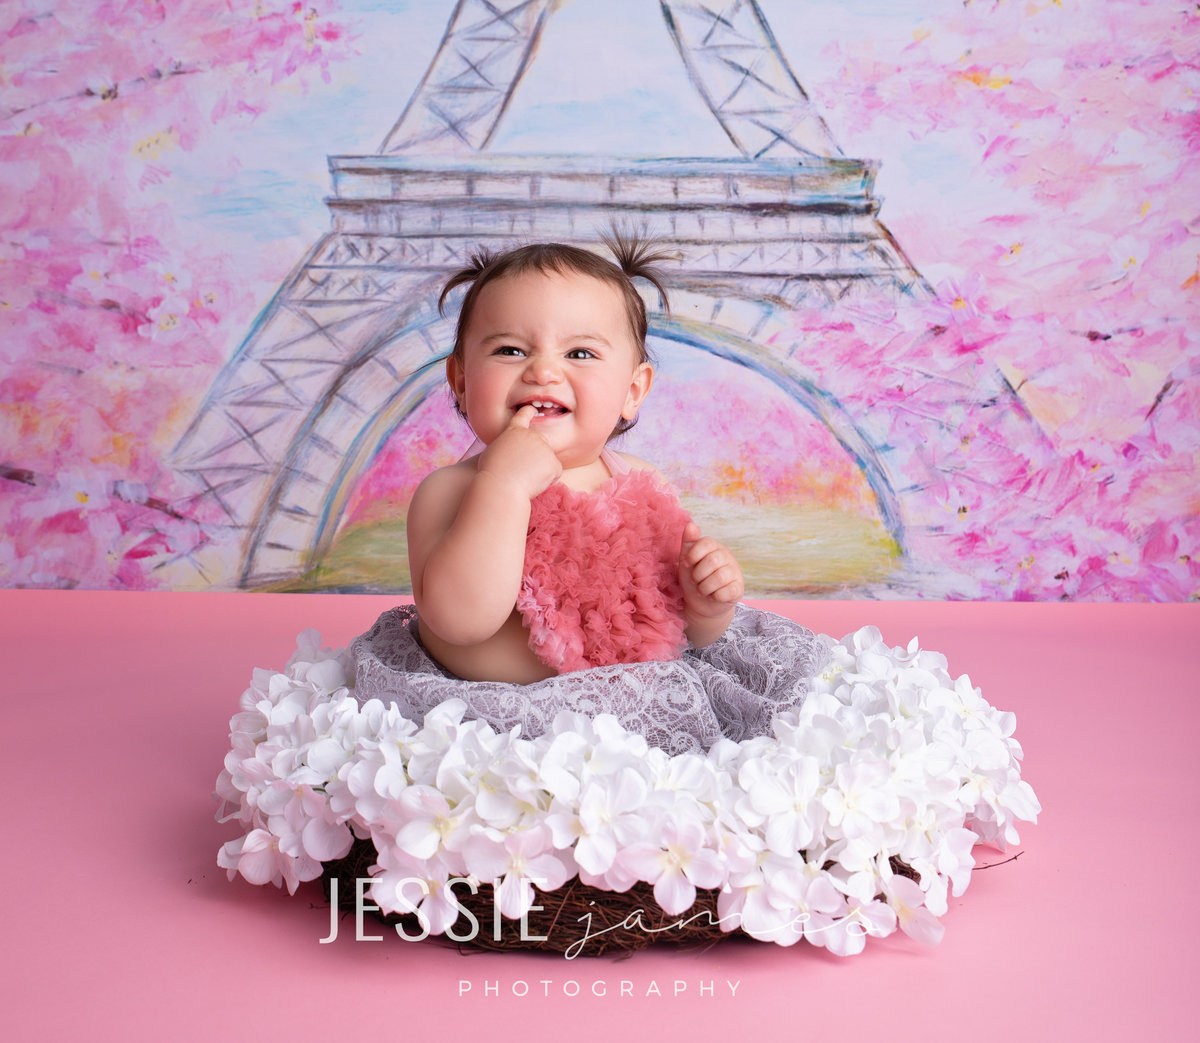 one year old girl sitting in a floral wreath, paris themed photoshoot